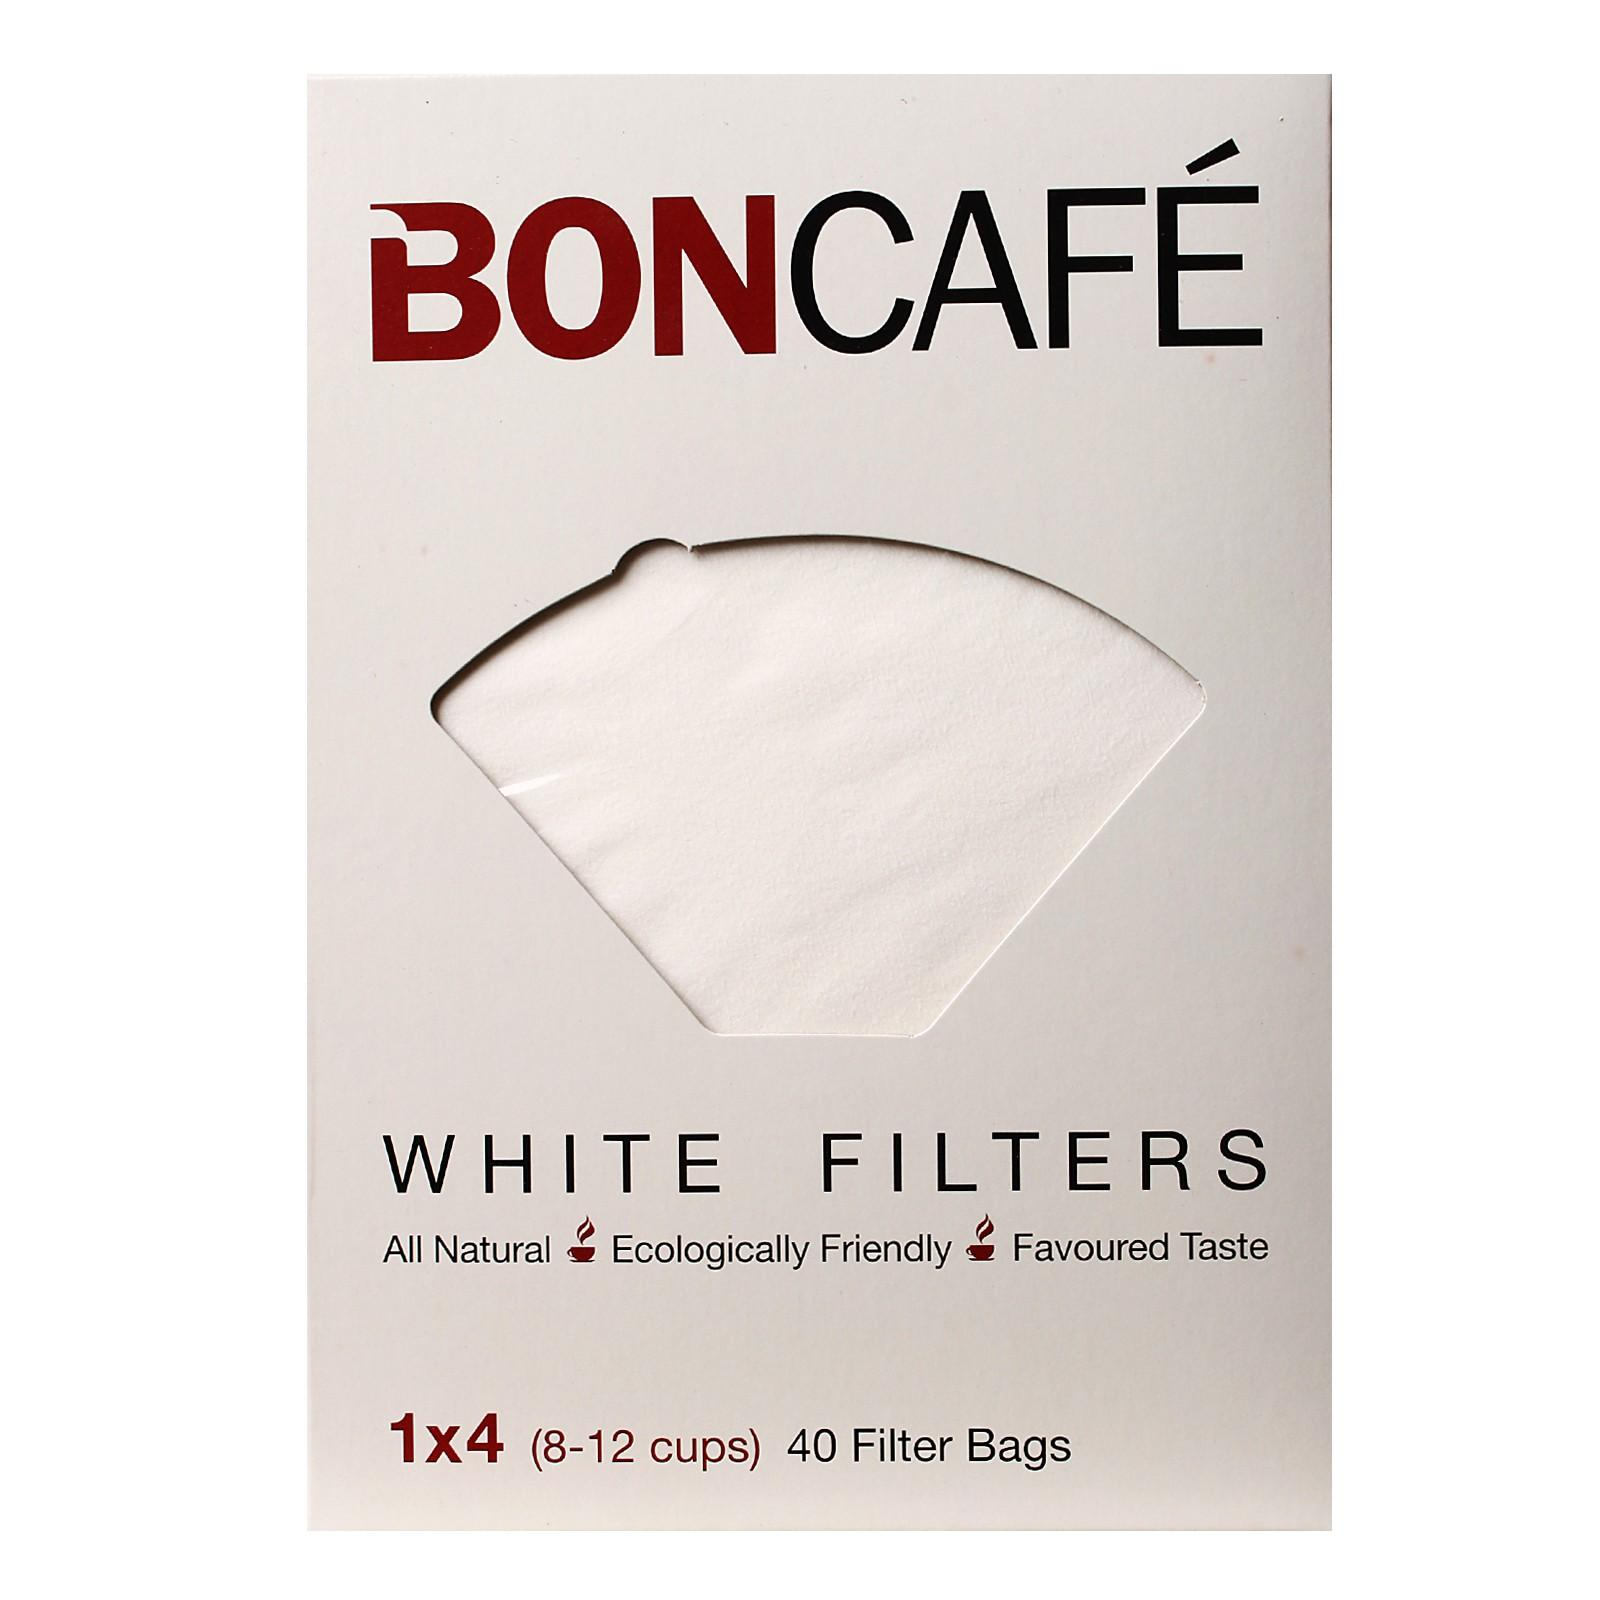 Boncafe White Filters (8-12 Cups)